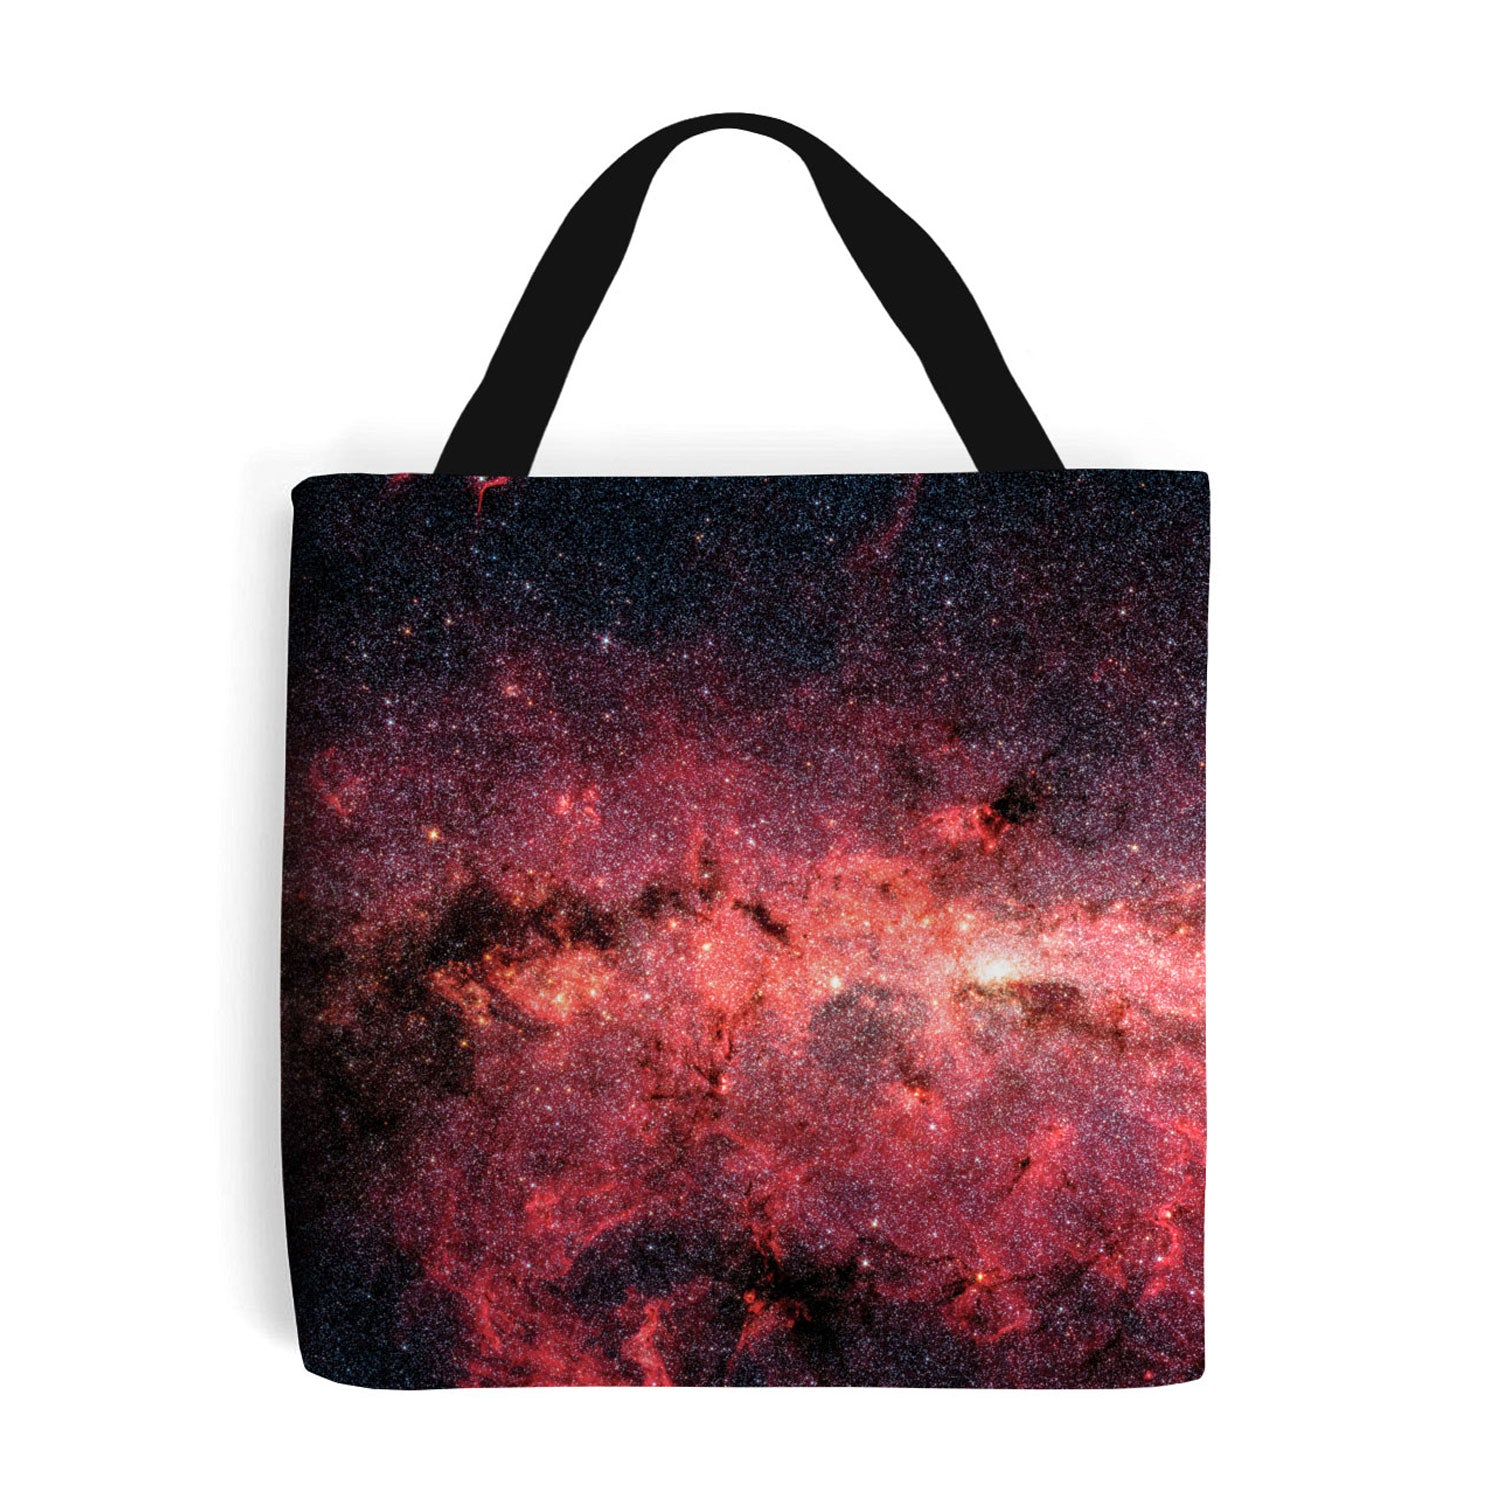 red shopping bag showing the Milky Way